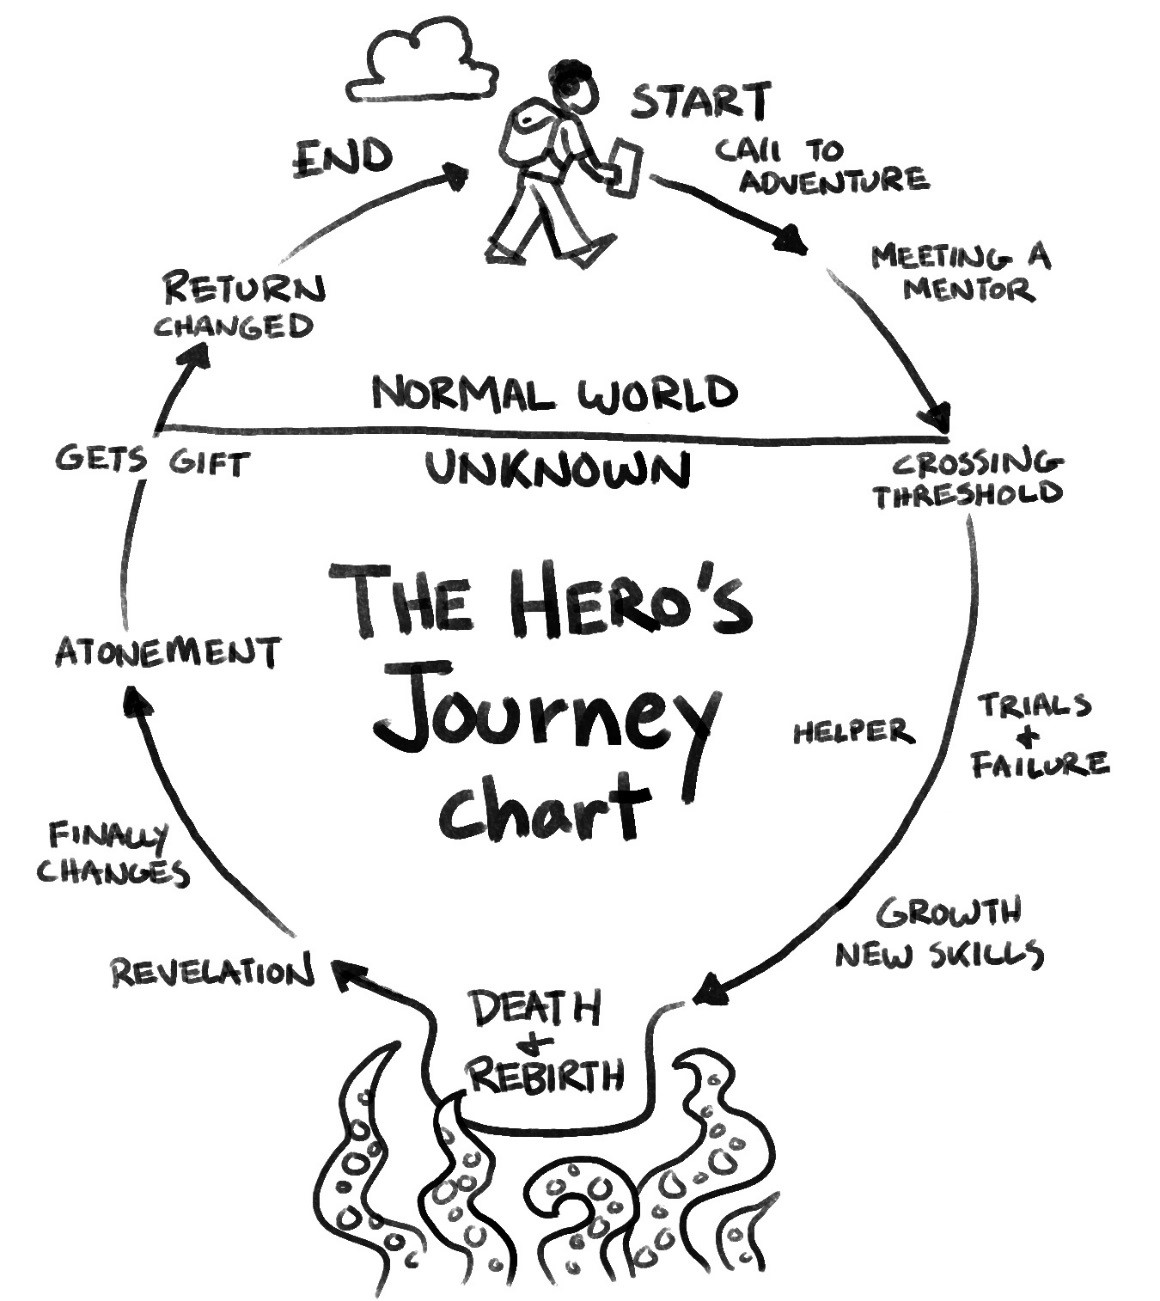 The Entrepreneurial Journey as a Hero's Journey